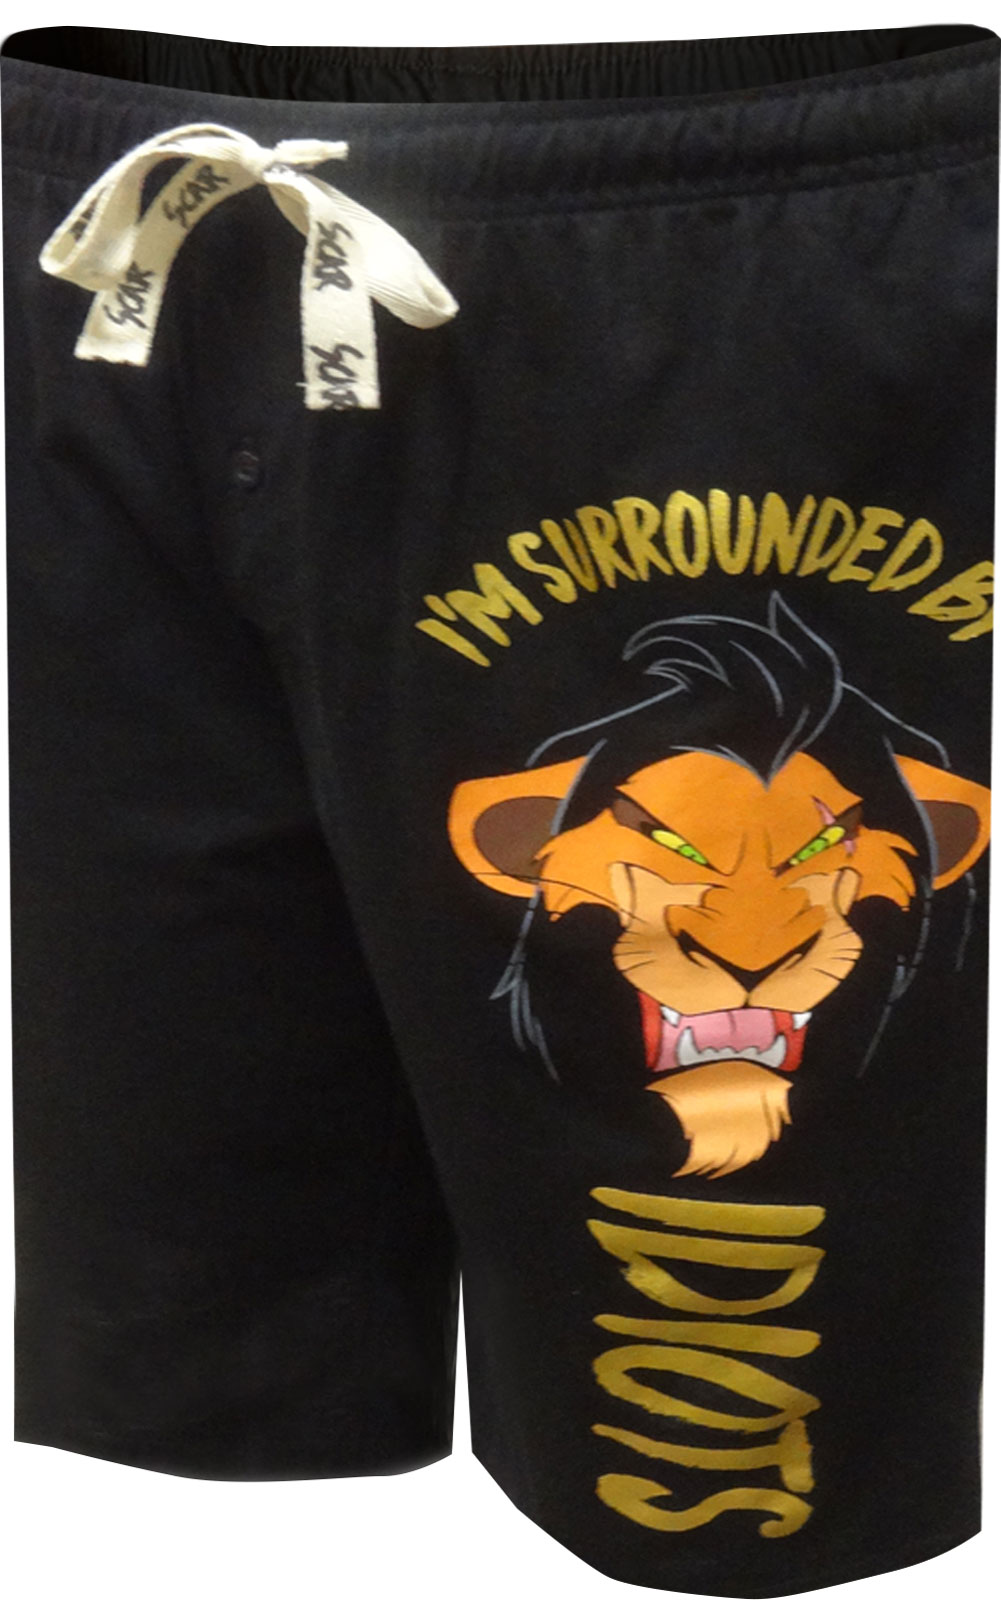 Image of Disney's Lion King Scar Surrounded By Idiots Lounge Shorts for men